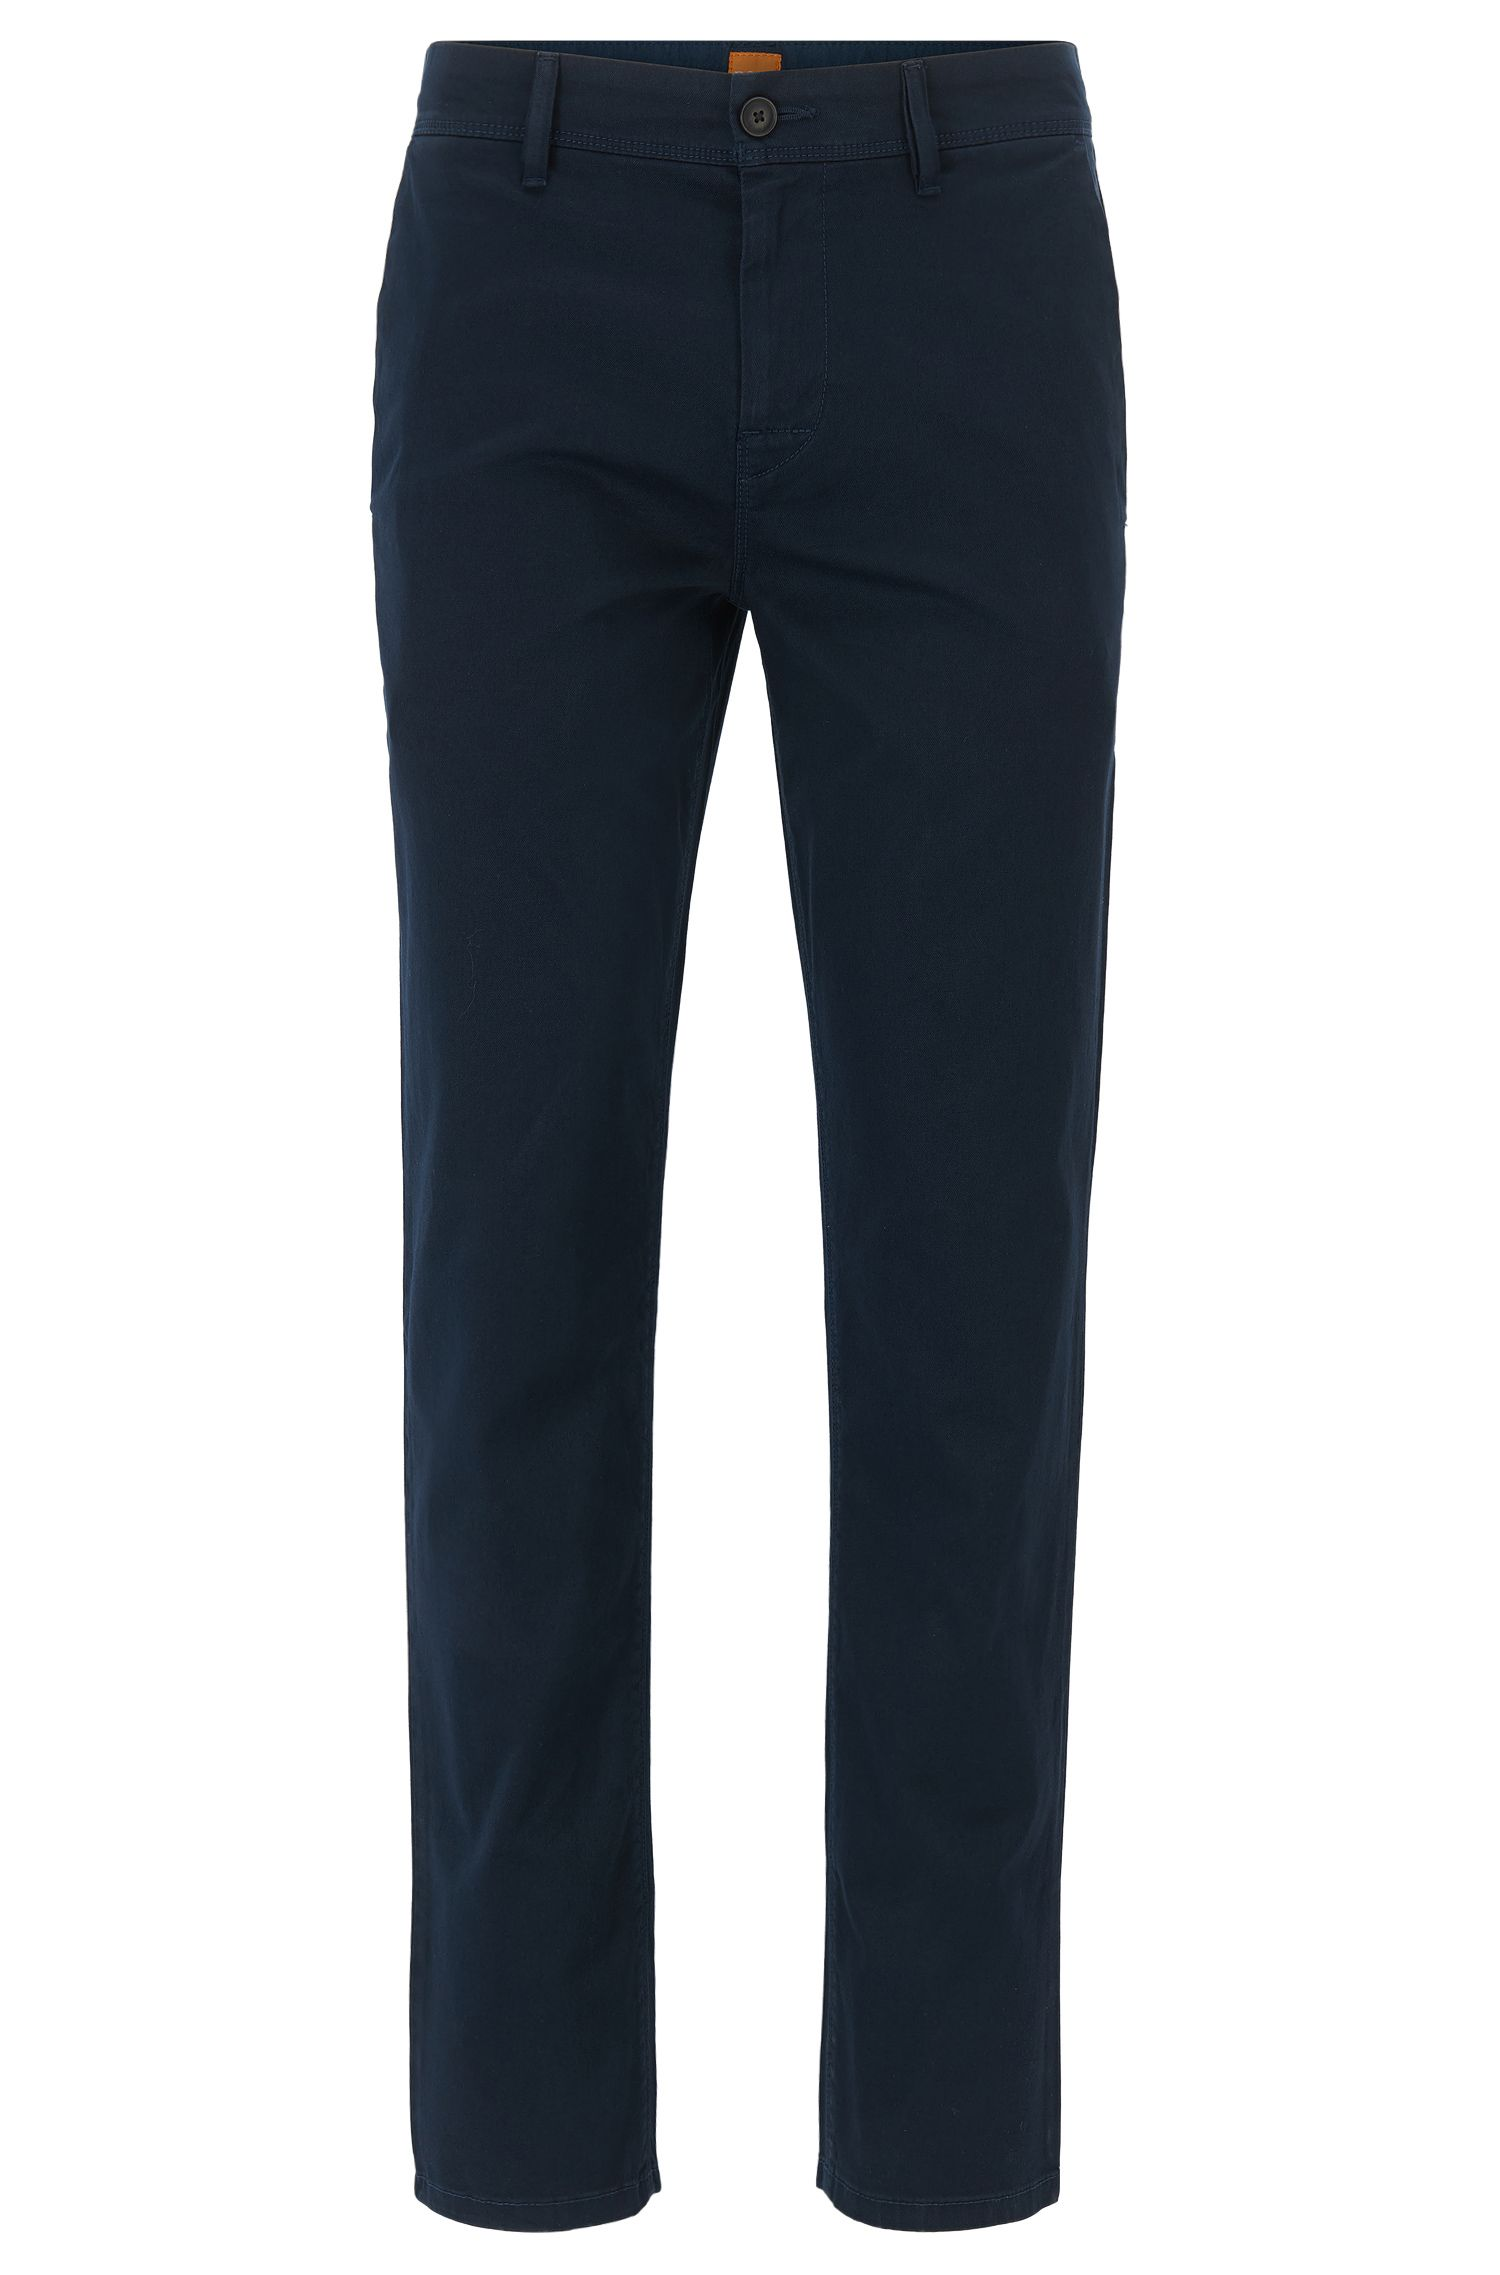 'Schino Tapered D' | Tapered Fit, Stretch Cotton Chino Pants